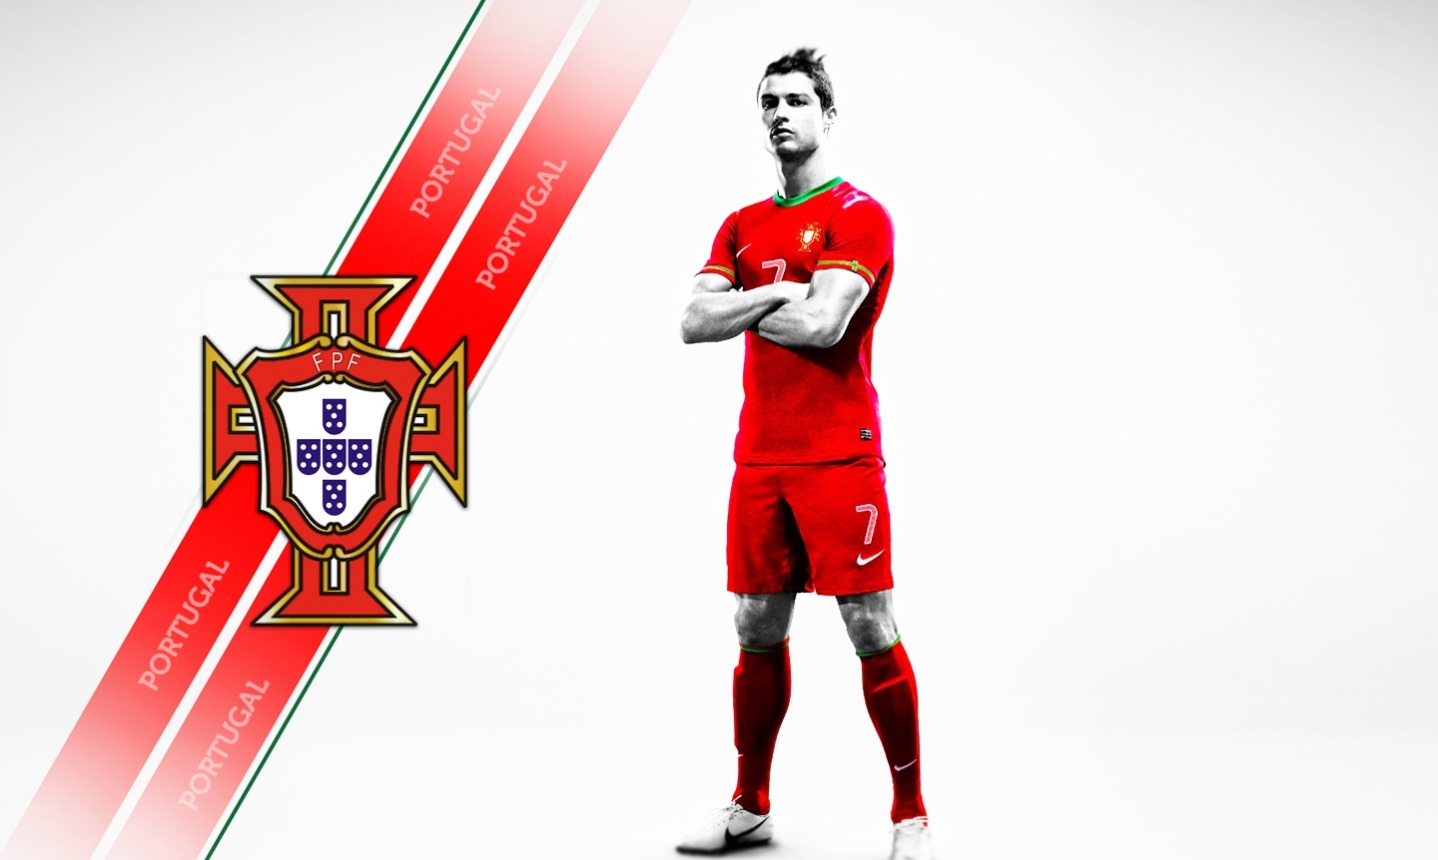 16 2015 By admin Comments Off on Portugal Football Team Wallpapers 1438x860